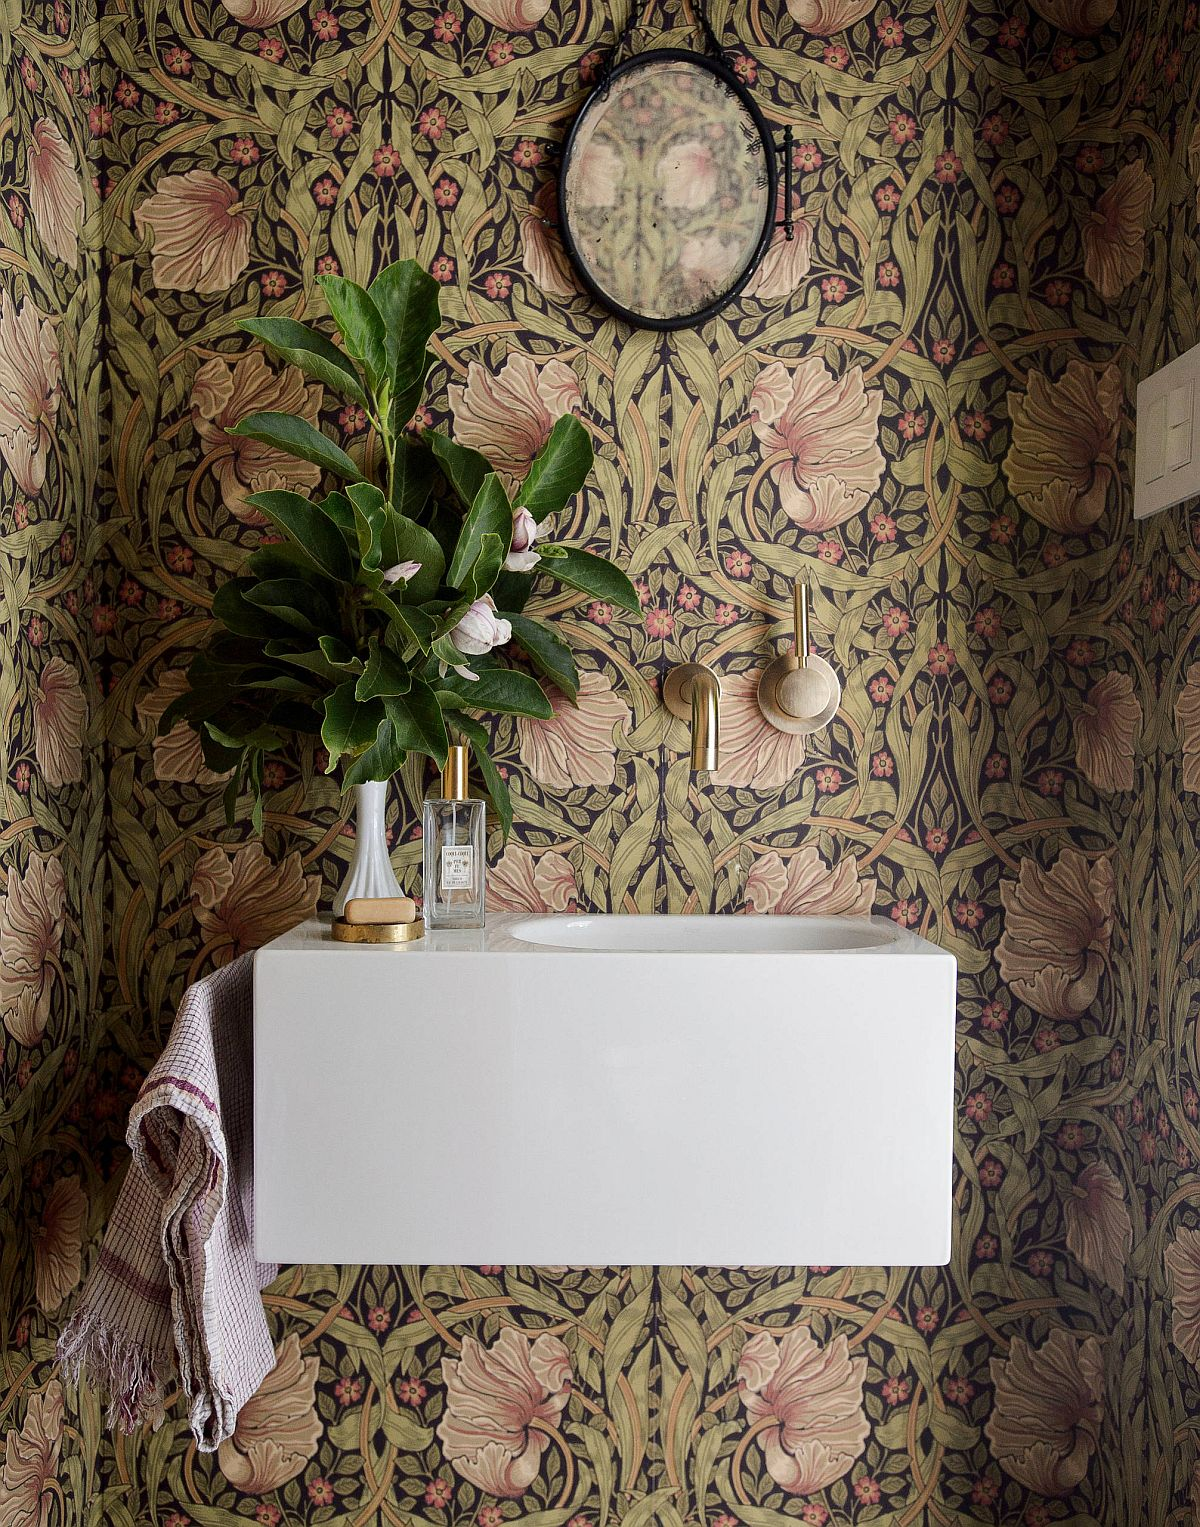 Floral pattern of the wallpaper accentuates the natural appeal of this smart modern powder room